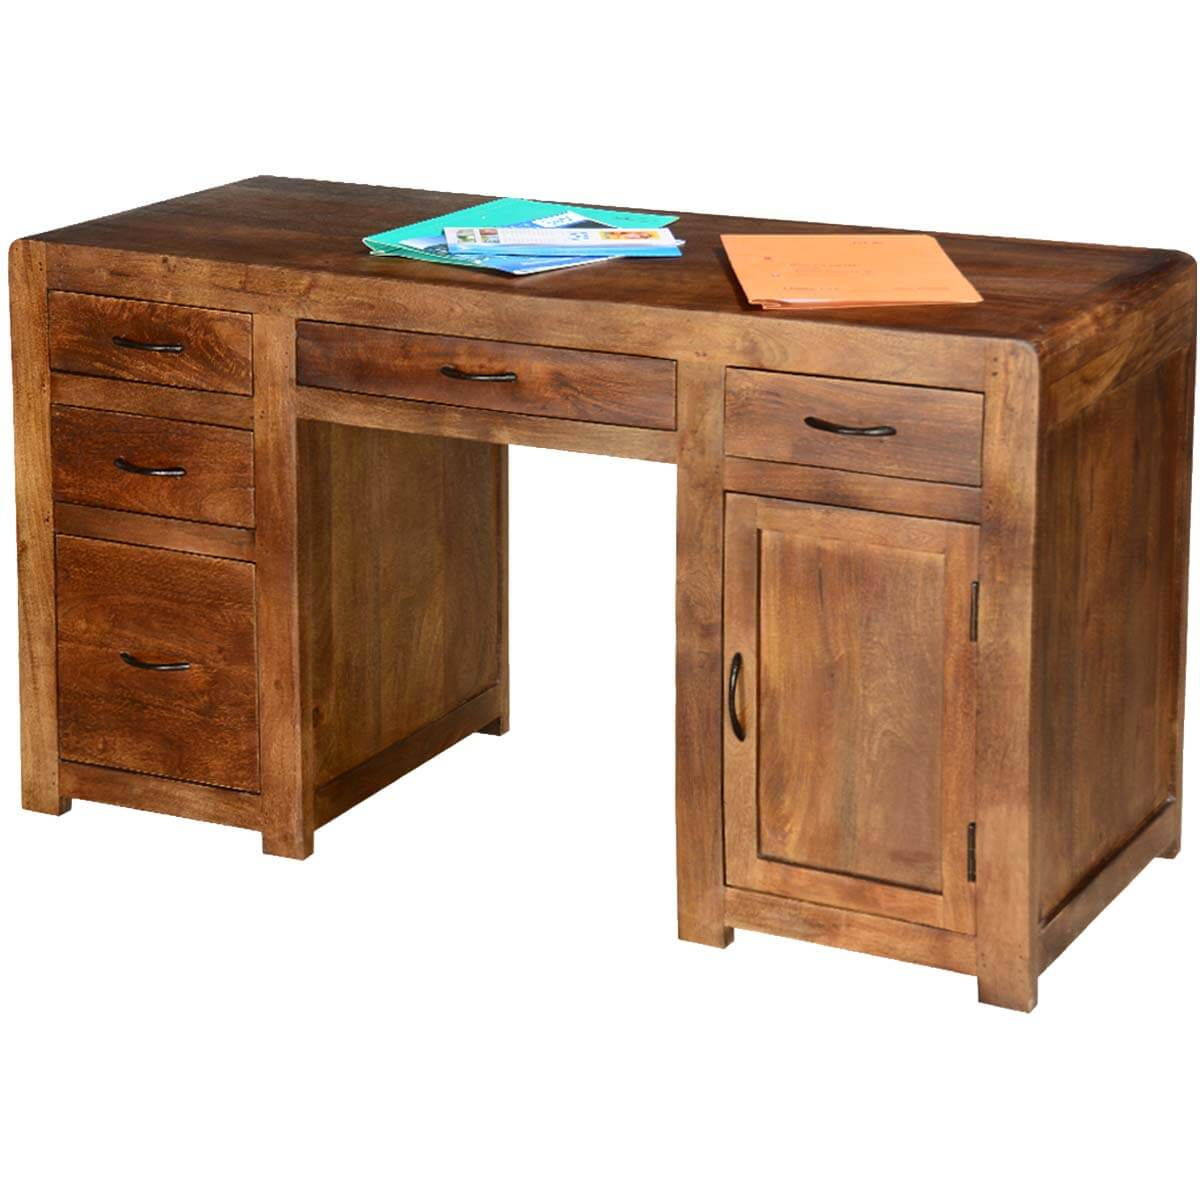 Desk Cabinet: Rustic Classic Pedestal Storage Desk With 5 Drawer N Cabinet